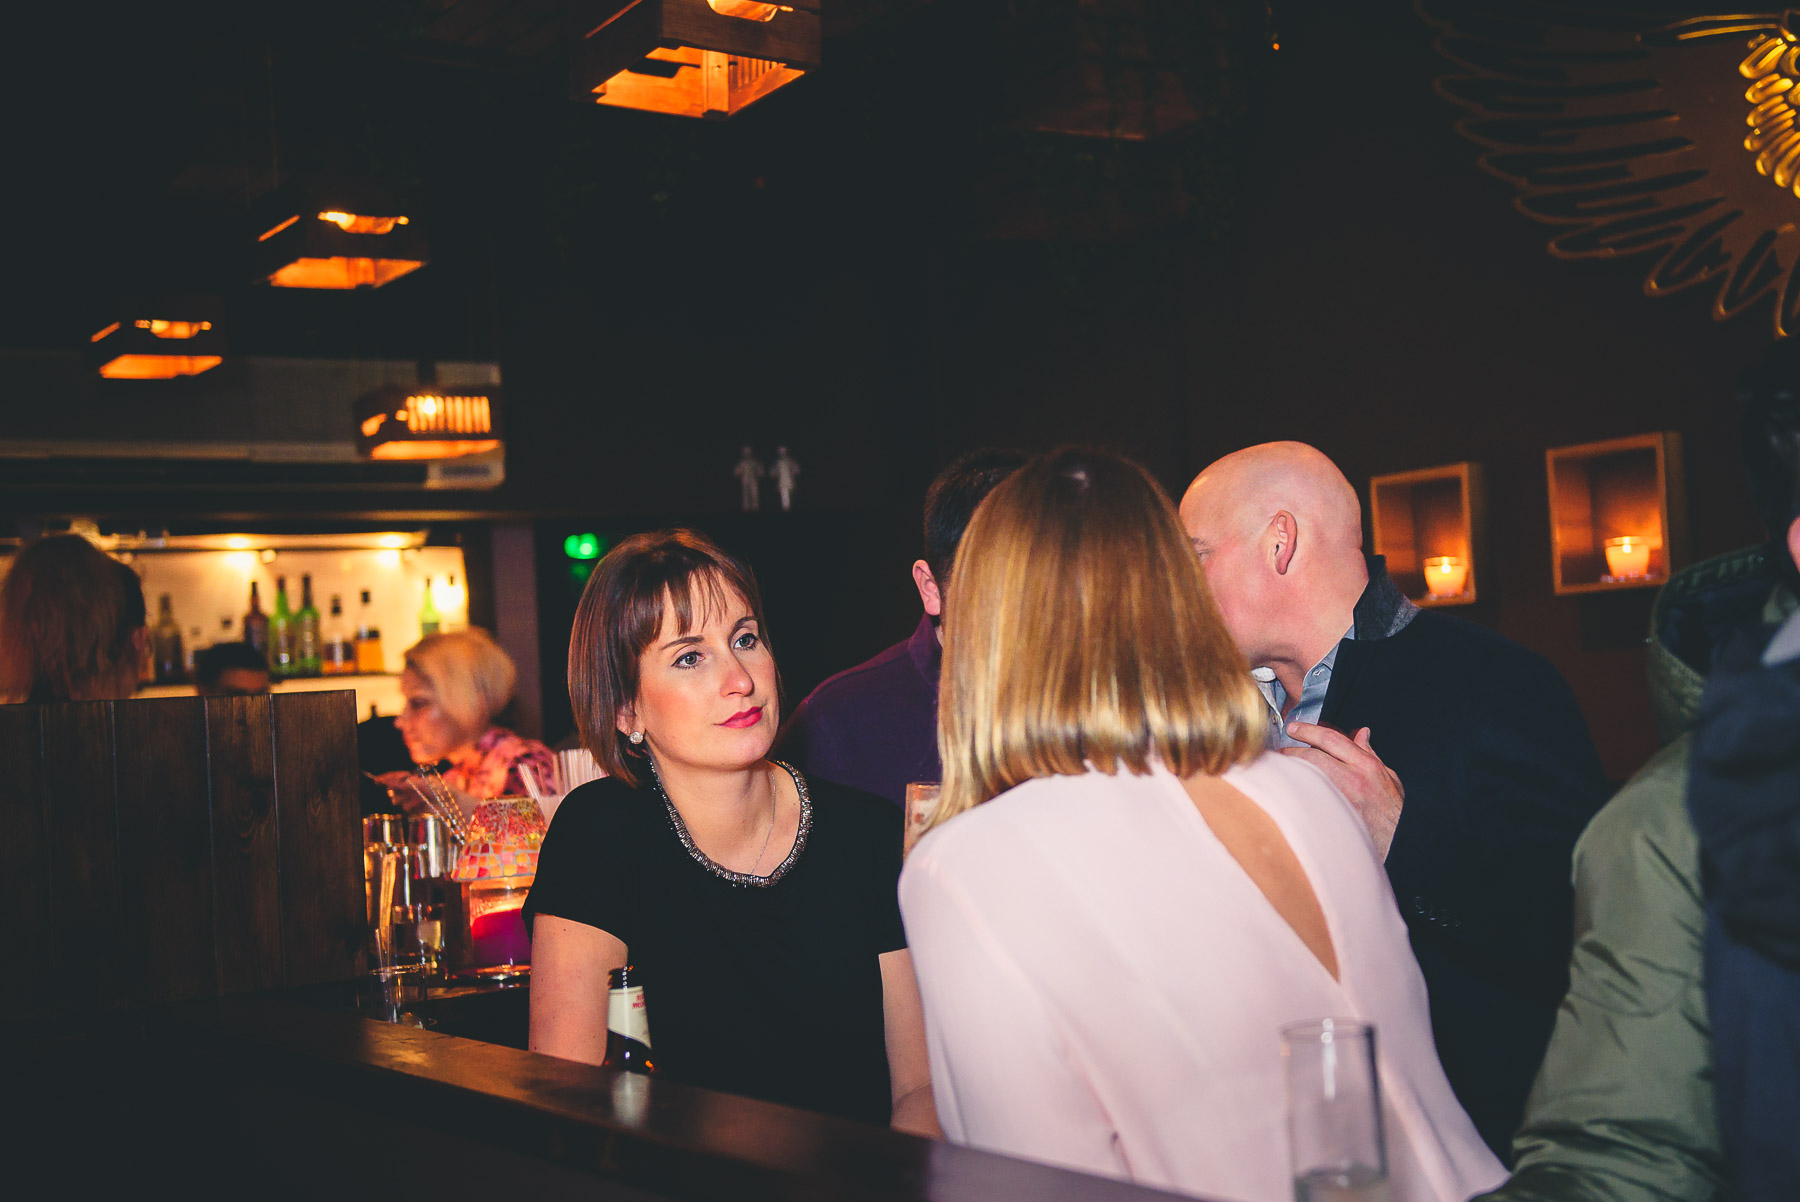 Angels cocktail bar Oxford_24.11.2018_766.jpg